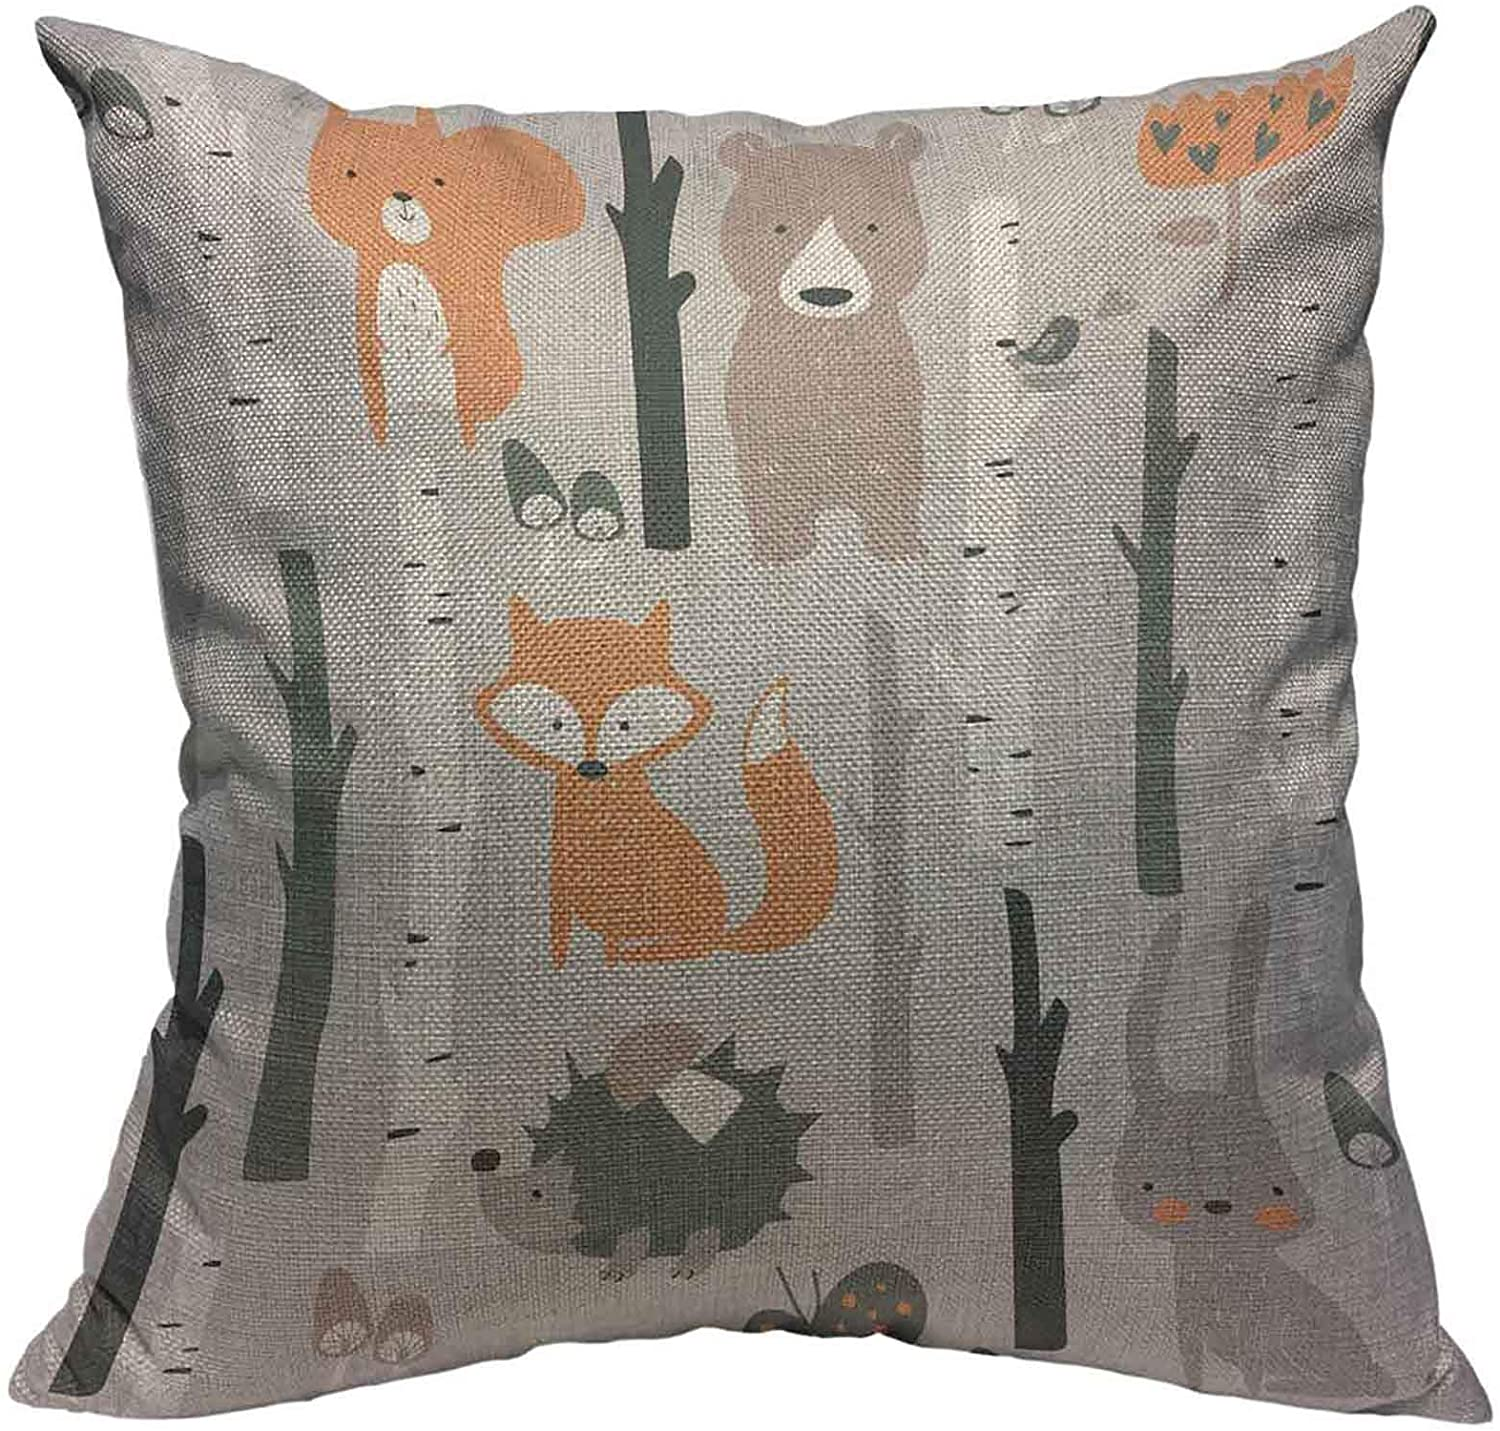 Throw Pillow Cover Cute Forest Animal Cotton Linen Square Pillowcases Fox Bear Bunny Elk Hedgehog Bird Mushroom Tree cartoon Green Black Grey Tree Modern Cushion Cover Home Decor 18 X 18 Inch